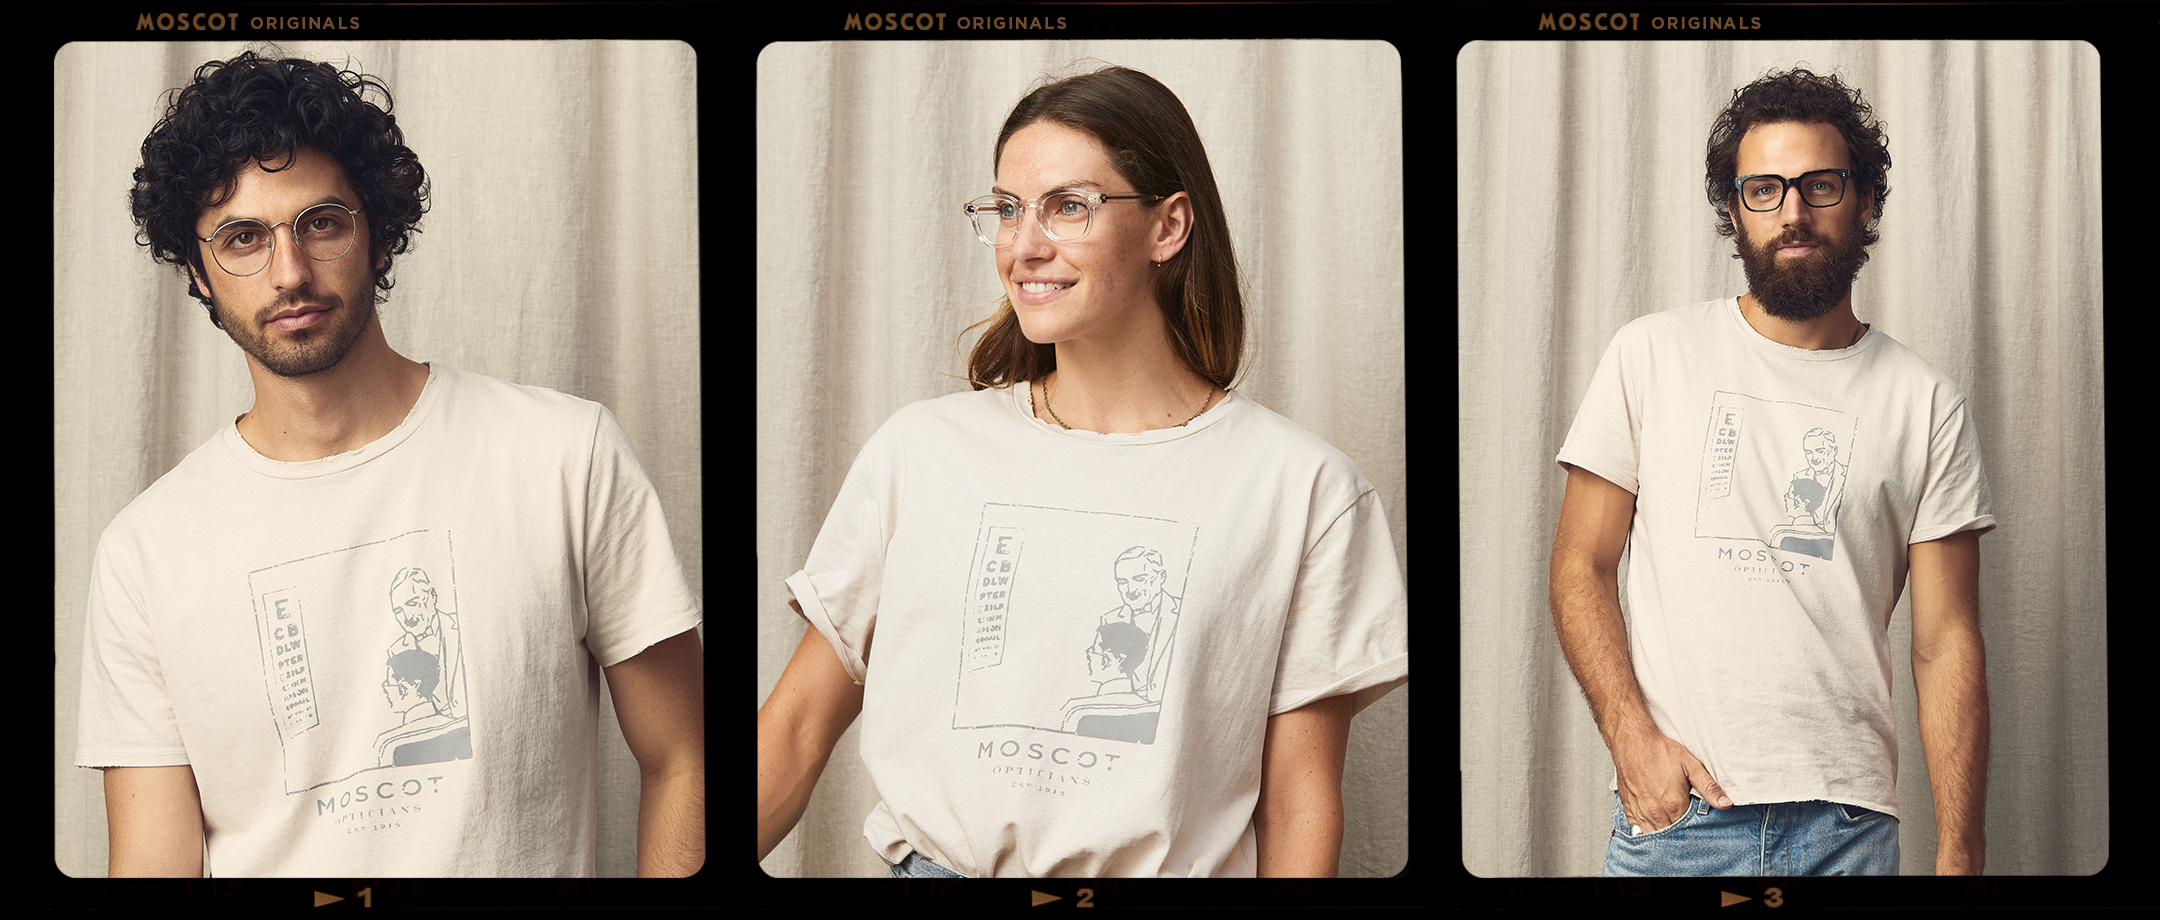 Models are wearing The MOSCOT TEE in size Medium.